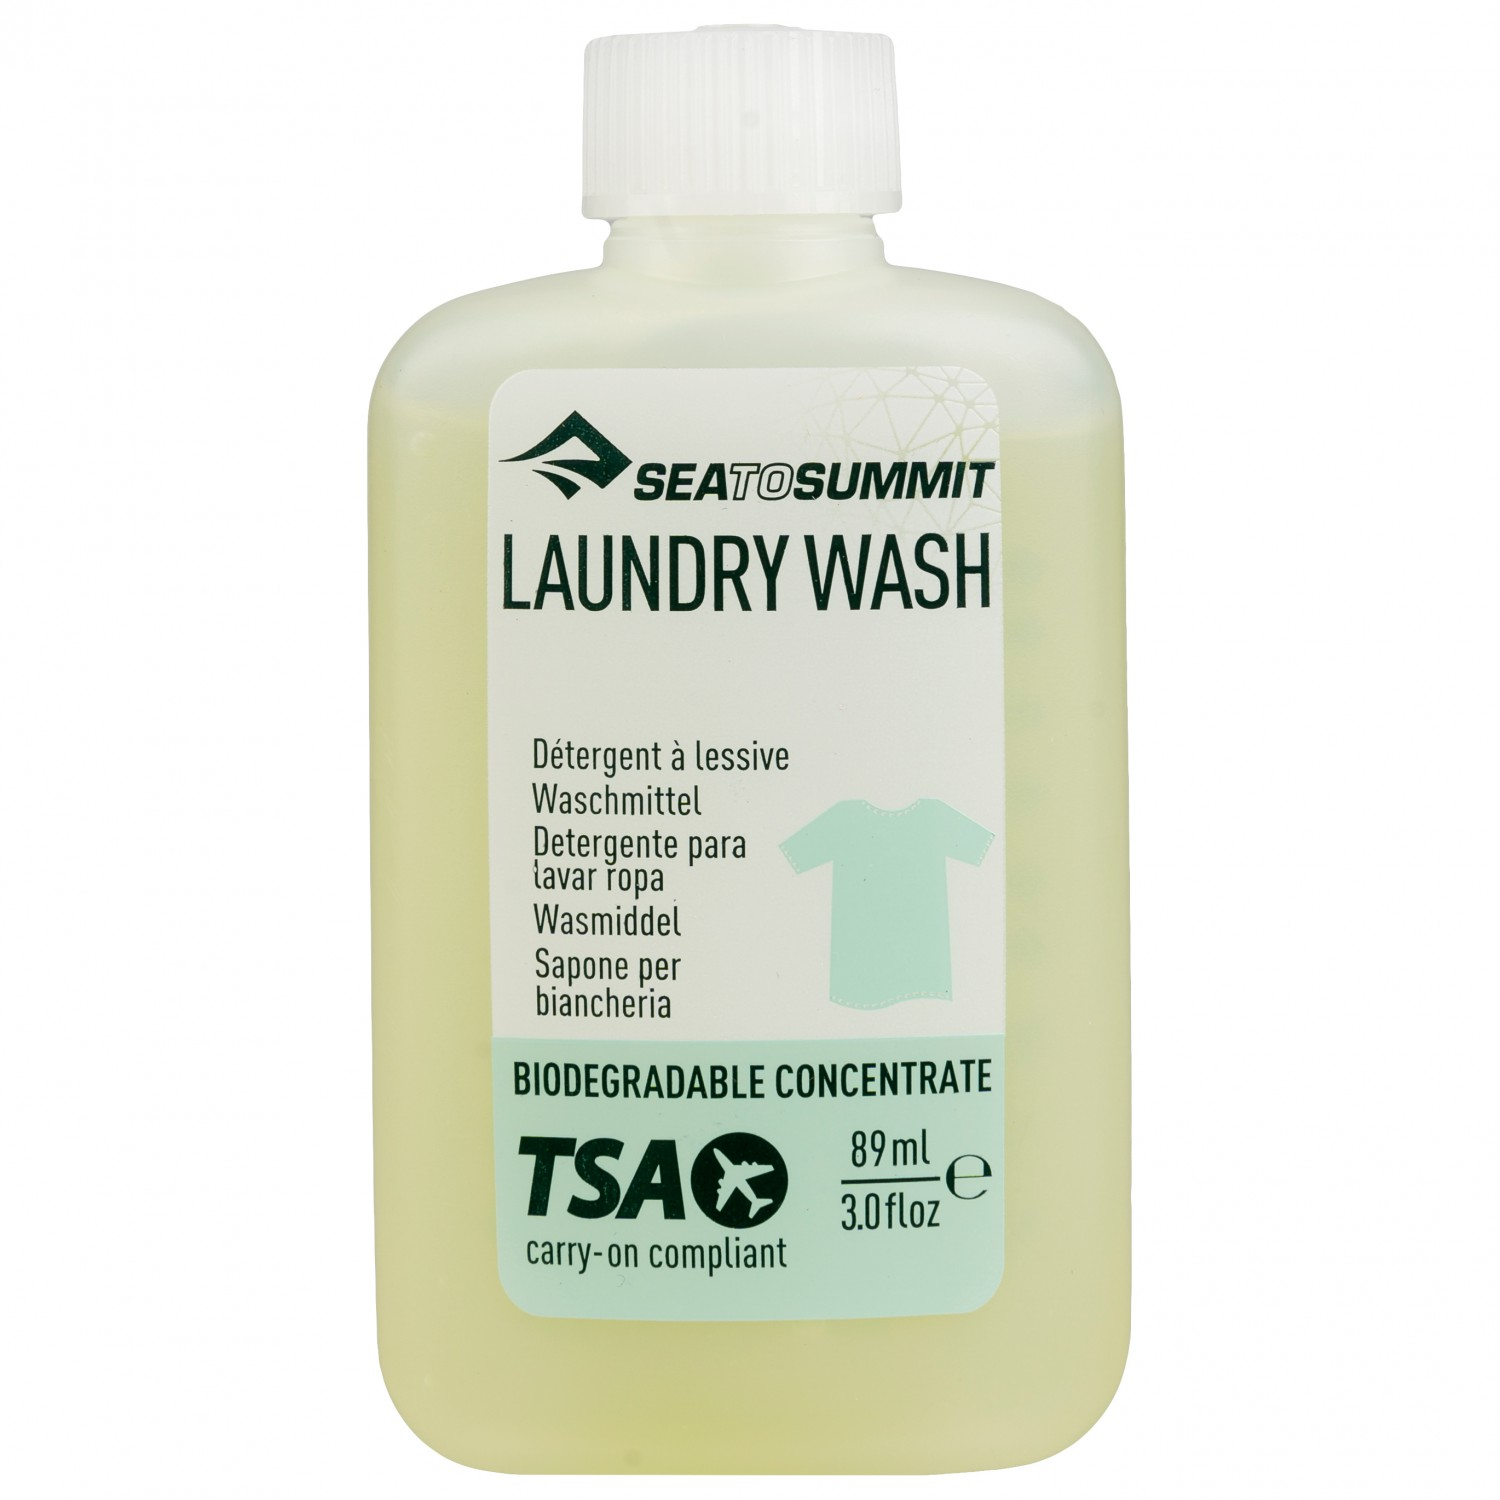 SEA TO SUMMIT Liquid Laundry Wash 89ml - Reisewaschmittel